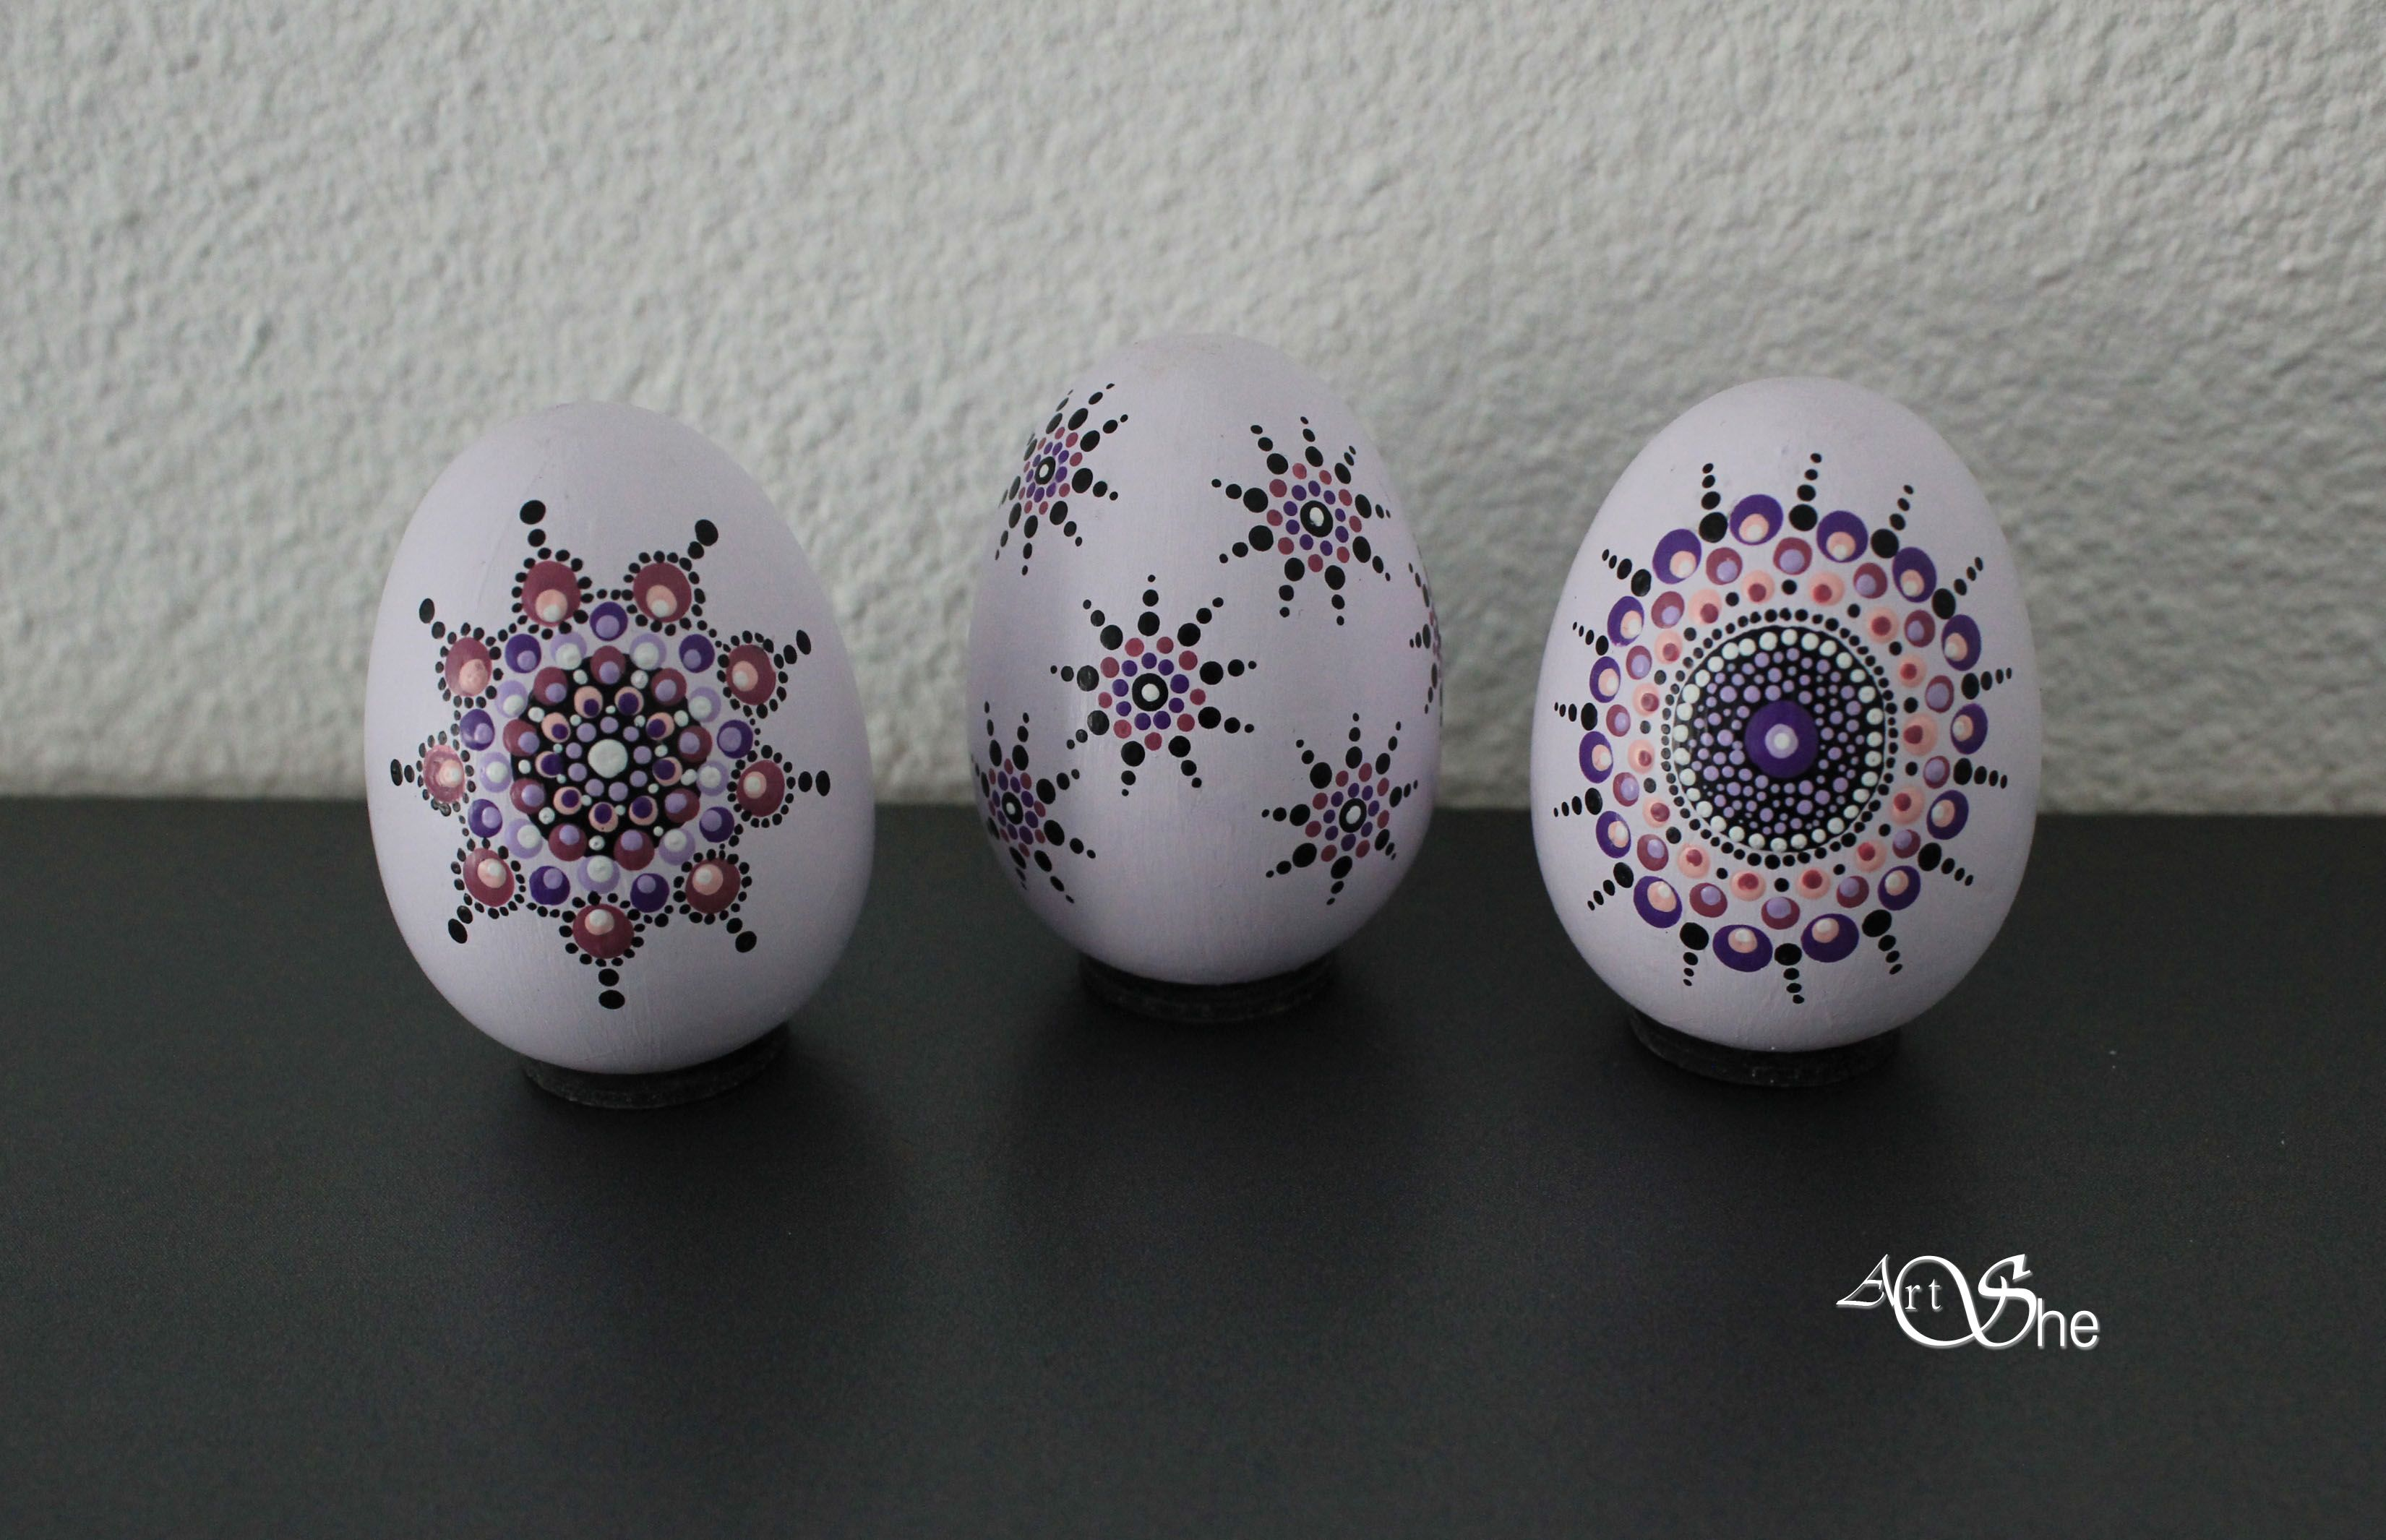 Hand painted wooden eggs 4,5 x 5,5 cm. Dotpainted with acryl paint and matt varnish. For sale in my webshop.